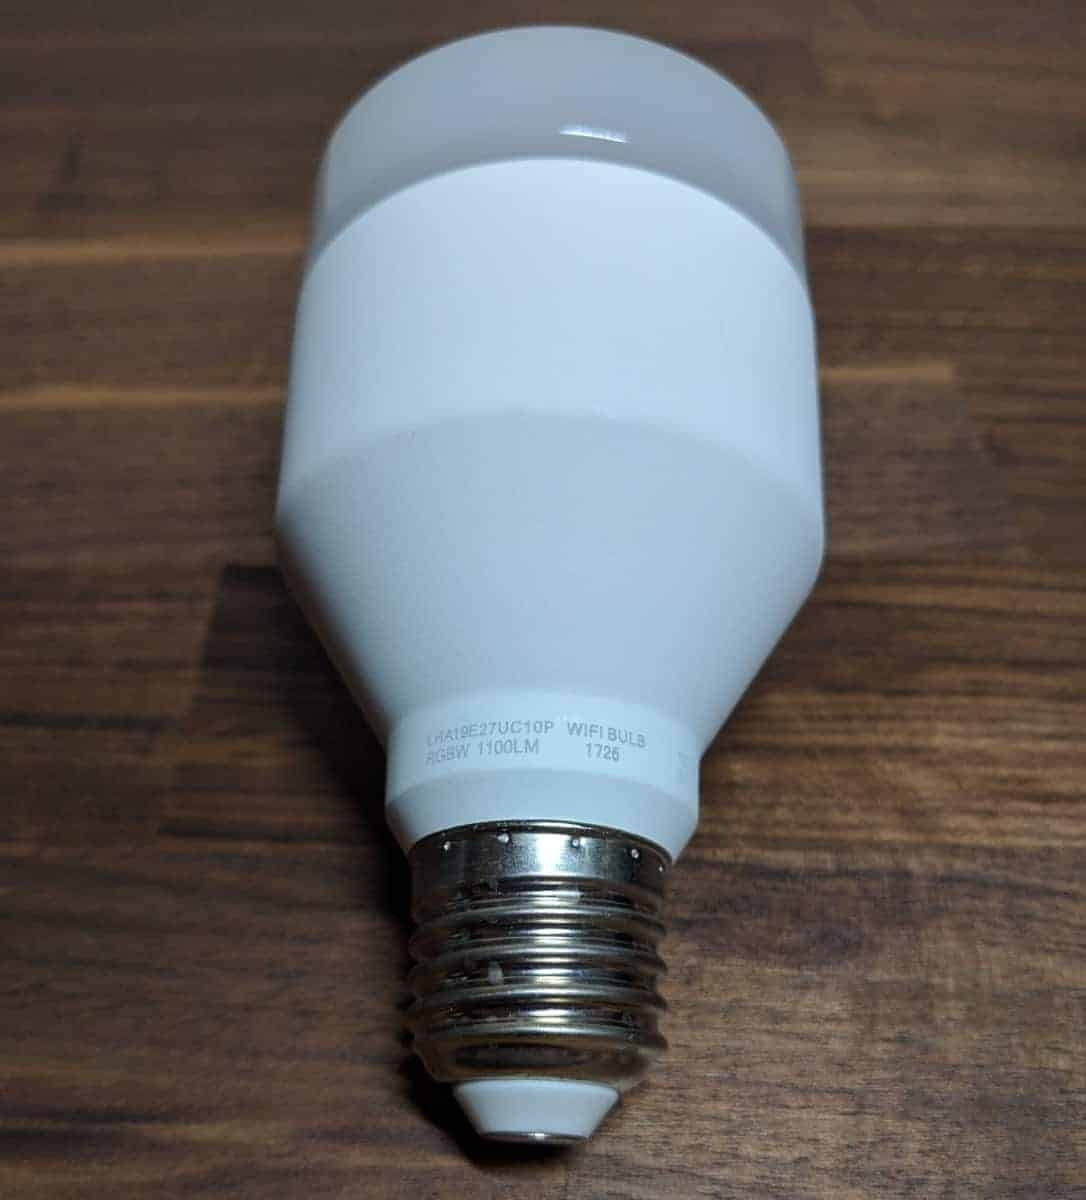 Lifx-Plus-A60-Photos-10 LIFX Plus Smart Lightbulb Review